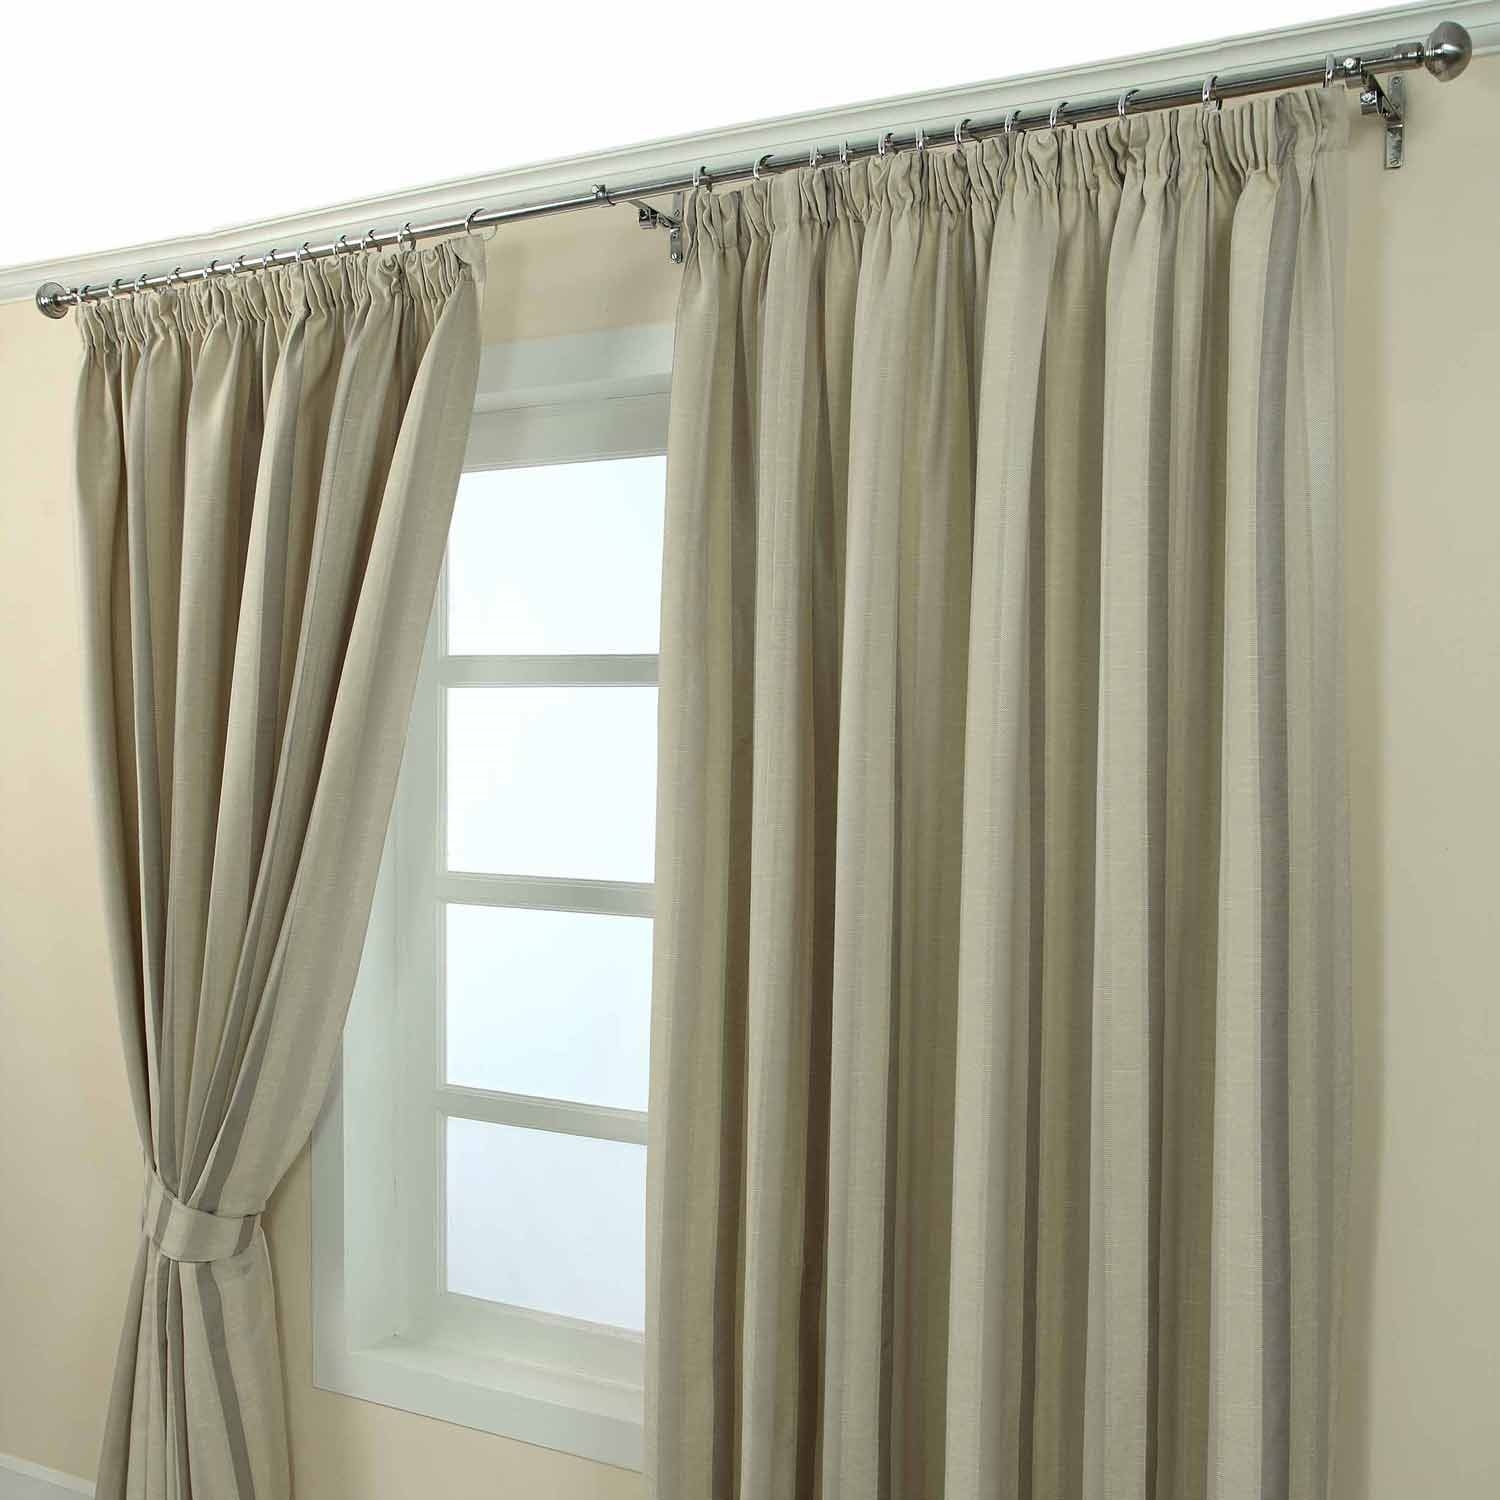 Pencil Pleat Jacquard Striped Curtains Fully Lined Blue Cream Within Green And Cream Striped Curtains (Image 13 of 15)